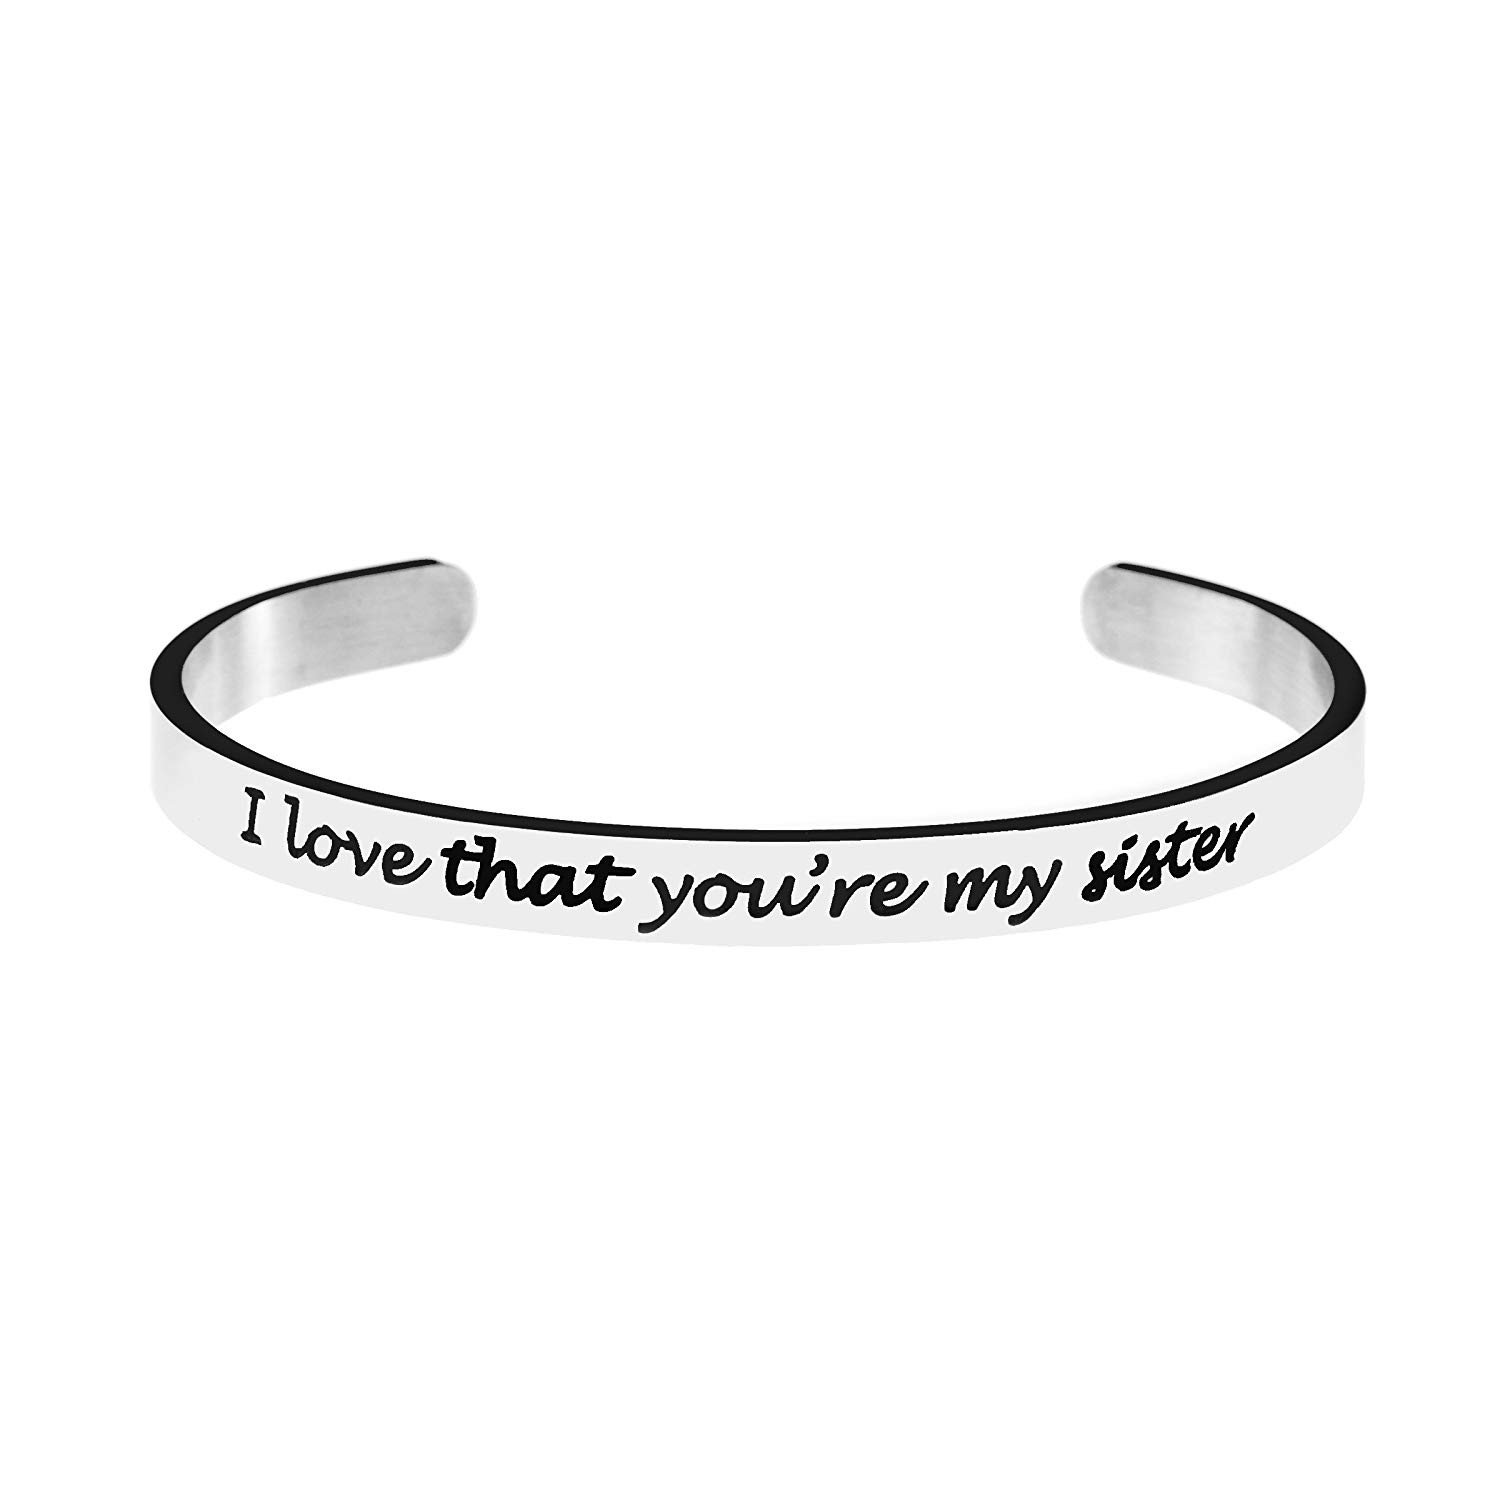 0608ba05fc019 Cheap Inspirational Jewelry, find Inspirational Jewelry deals on ...